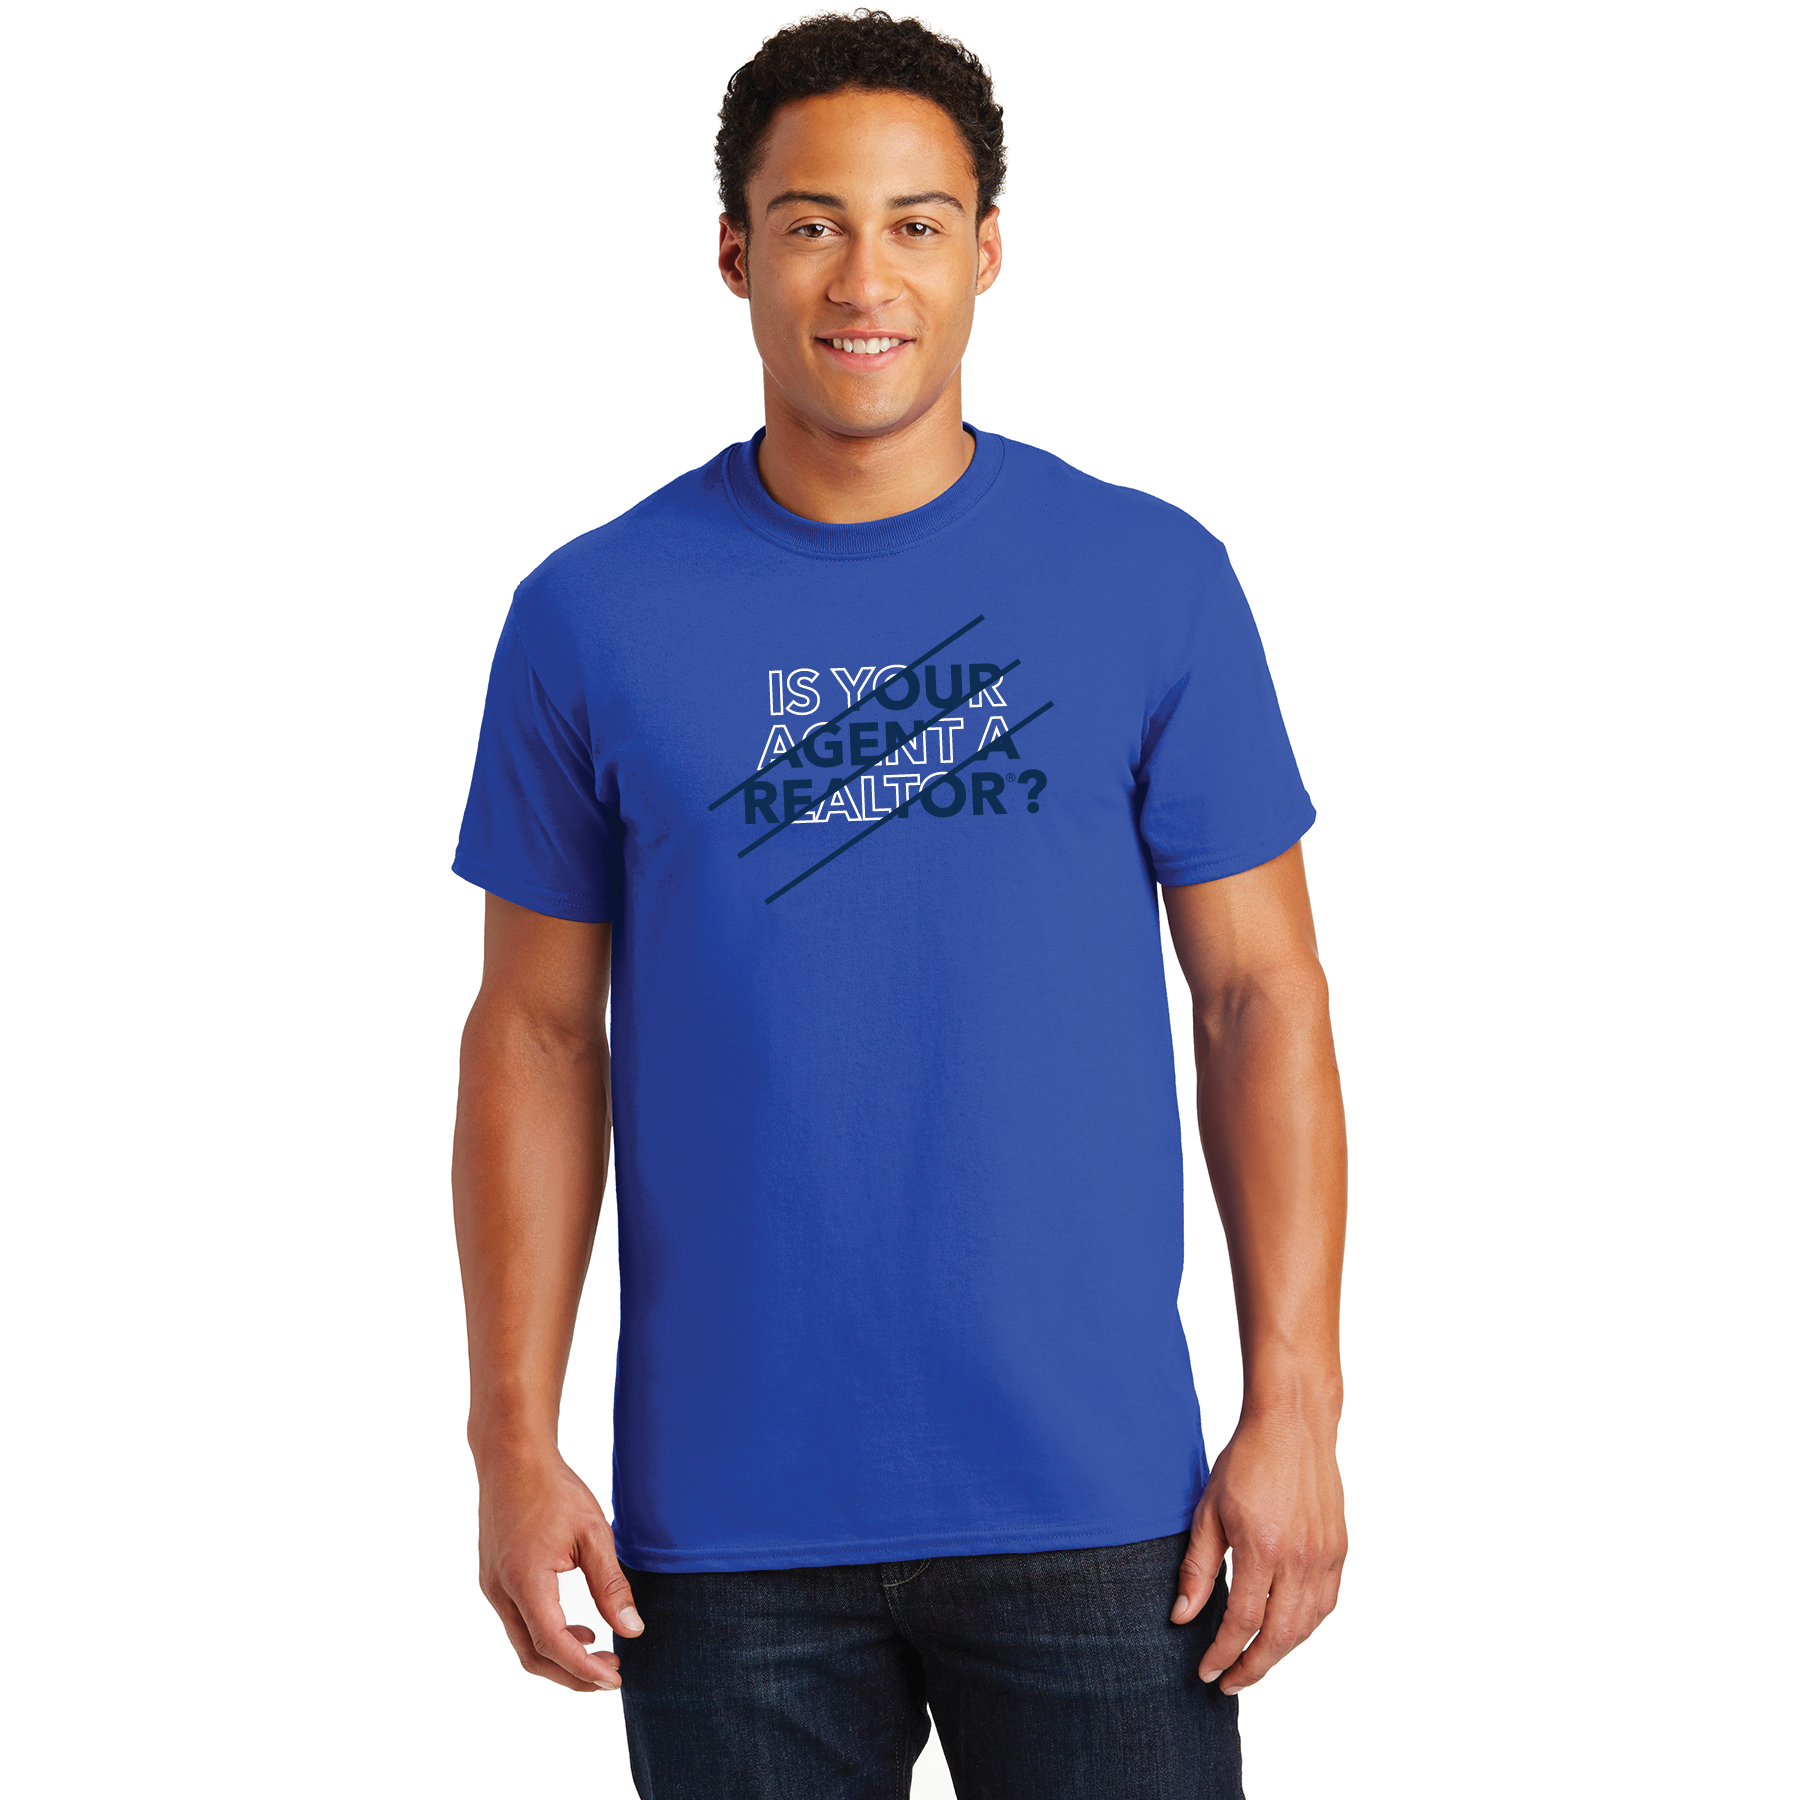 Is Your Agent a REALTOR® Royal Blue Tee Shirt TRSFR,twwr,ThatsWhoWeR,Thats,TWWR,ThatWho,ThatsWho,Twwr,Thats,Whos,We,Ares,Tees,T-shirt,Tee,Casual,Values,Tees,NewEra,Longs,Sleeves